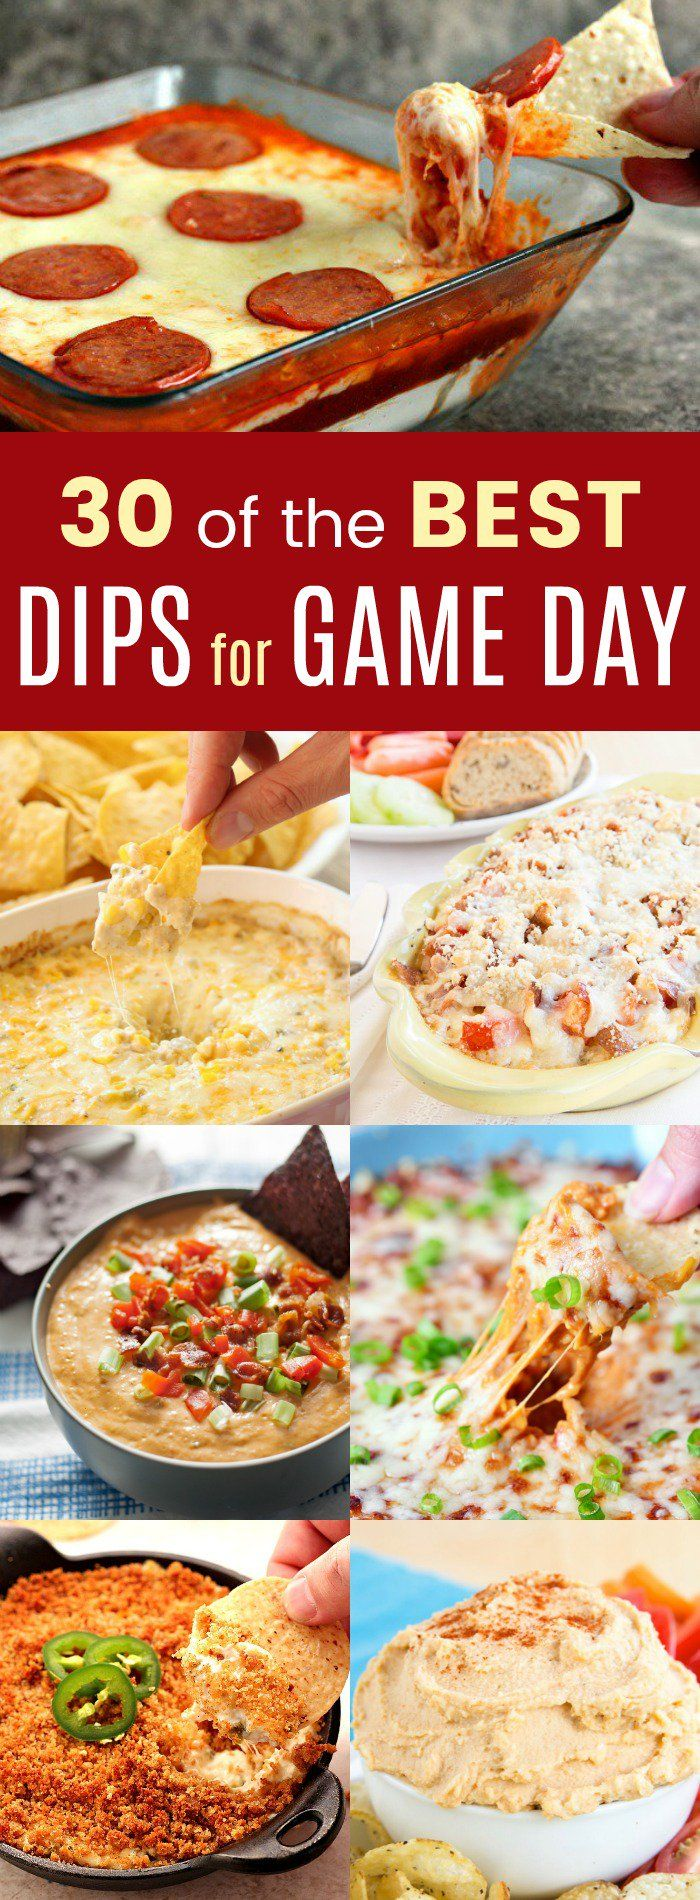 Best Dips for Game Day